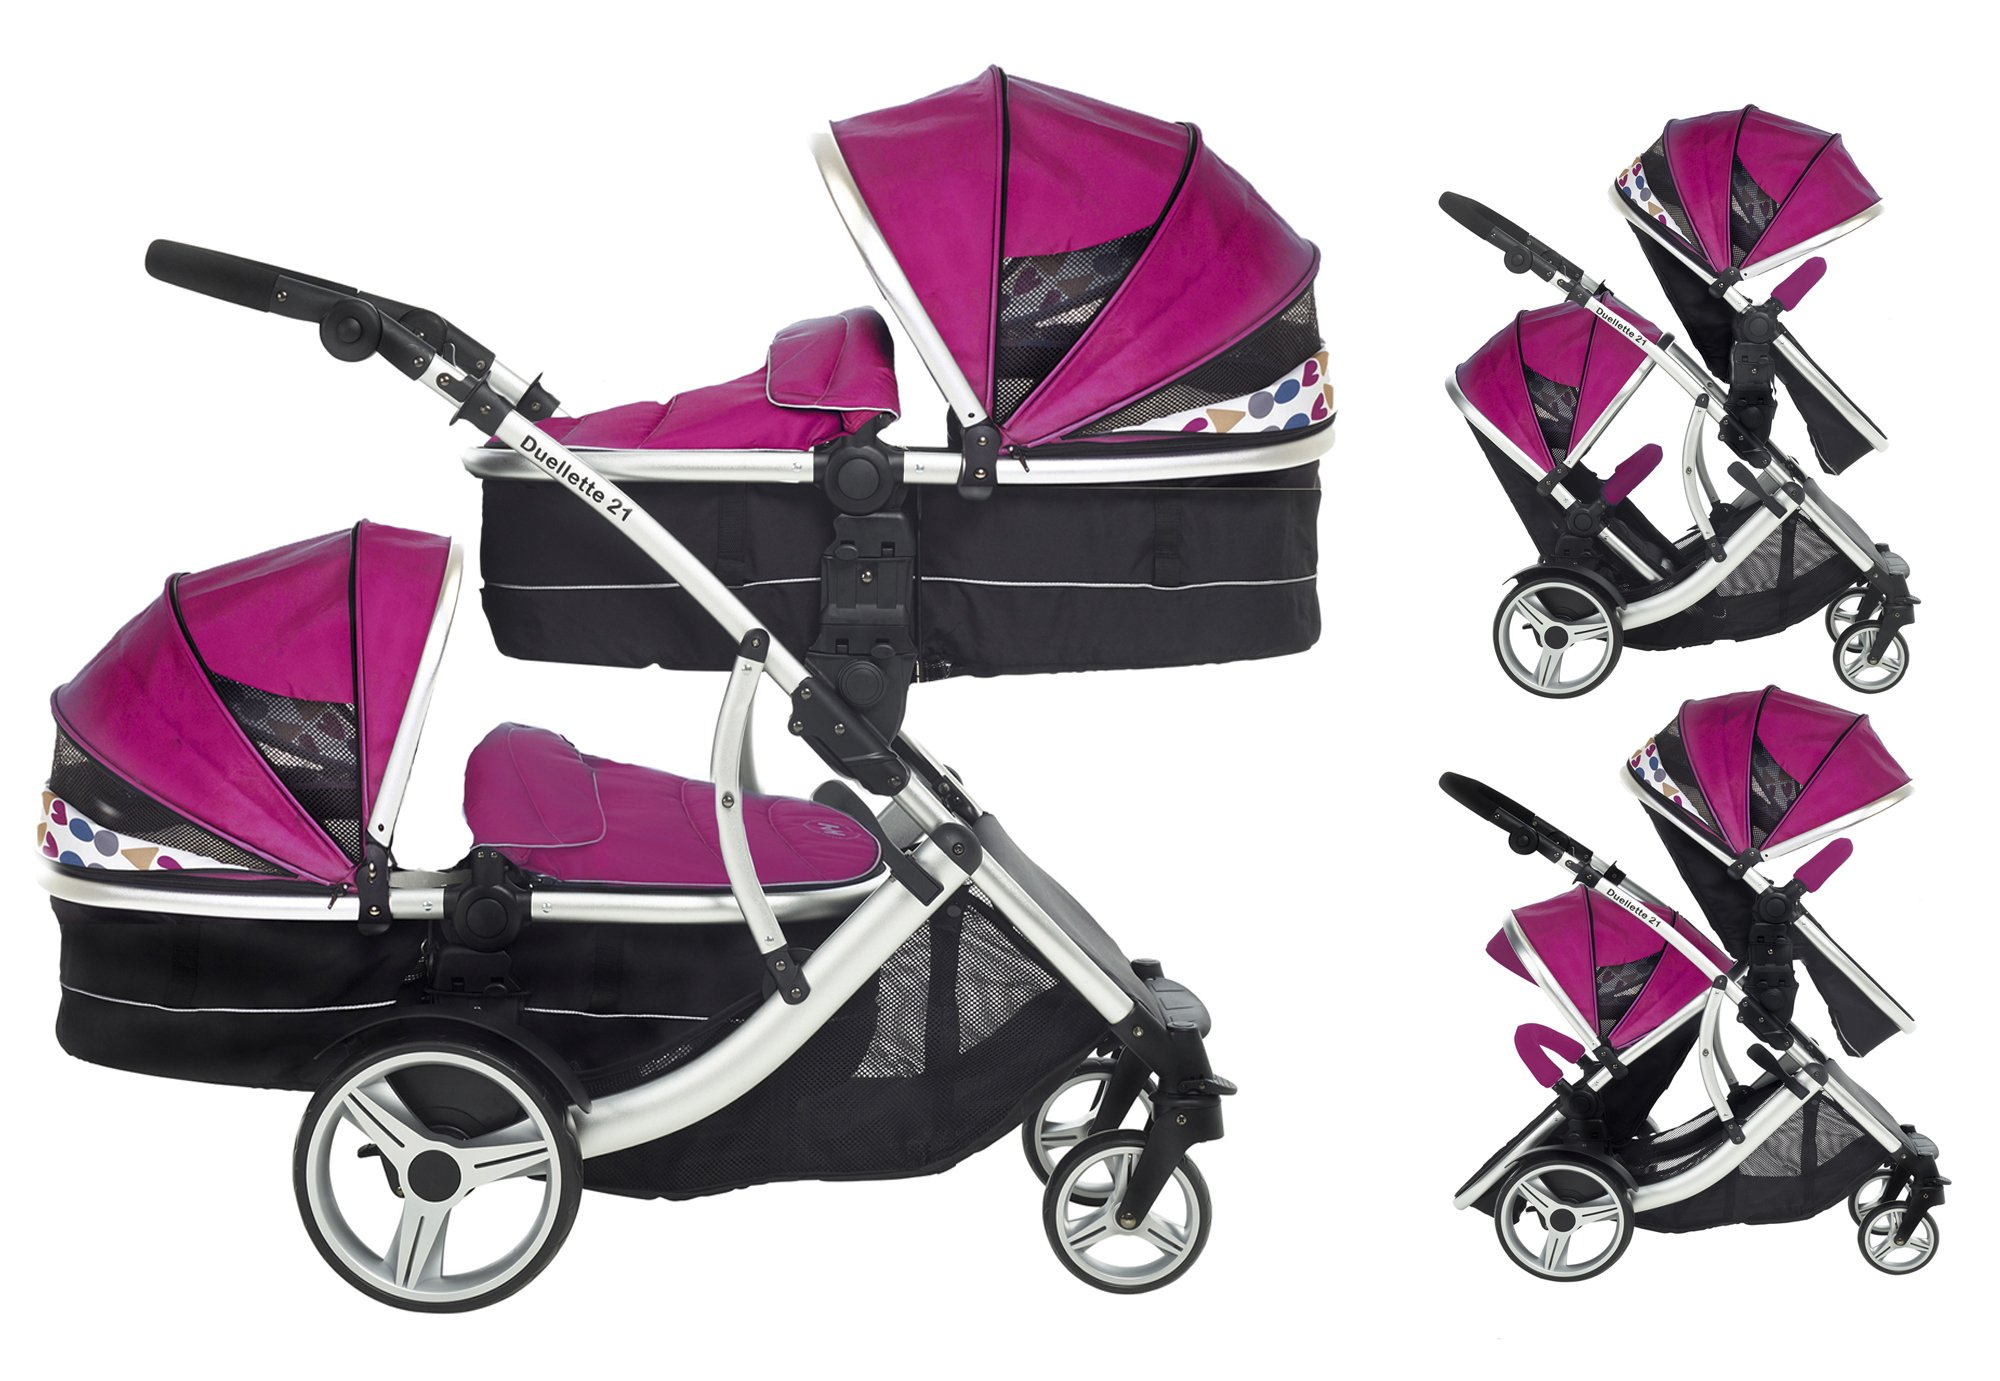 Kids Kargo Double Twin Tandem Pushchair. Duellette Combi Suitable from birth, Carrycot converts to toddler seat unit. Stroller by Kids Kargo (Dooglebug Raspberry)  Versatile. Suitable for Newborn Twins Compatible with car seats; Kidz Kargo, Britax Baby safe or Maxi Cosi adaptors. carrycots have mattress and soft lining, which zip off. Remove lining and lid, when baby grows out of carrycot mode, converts to seat unit 1